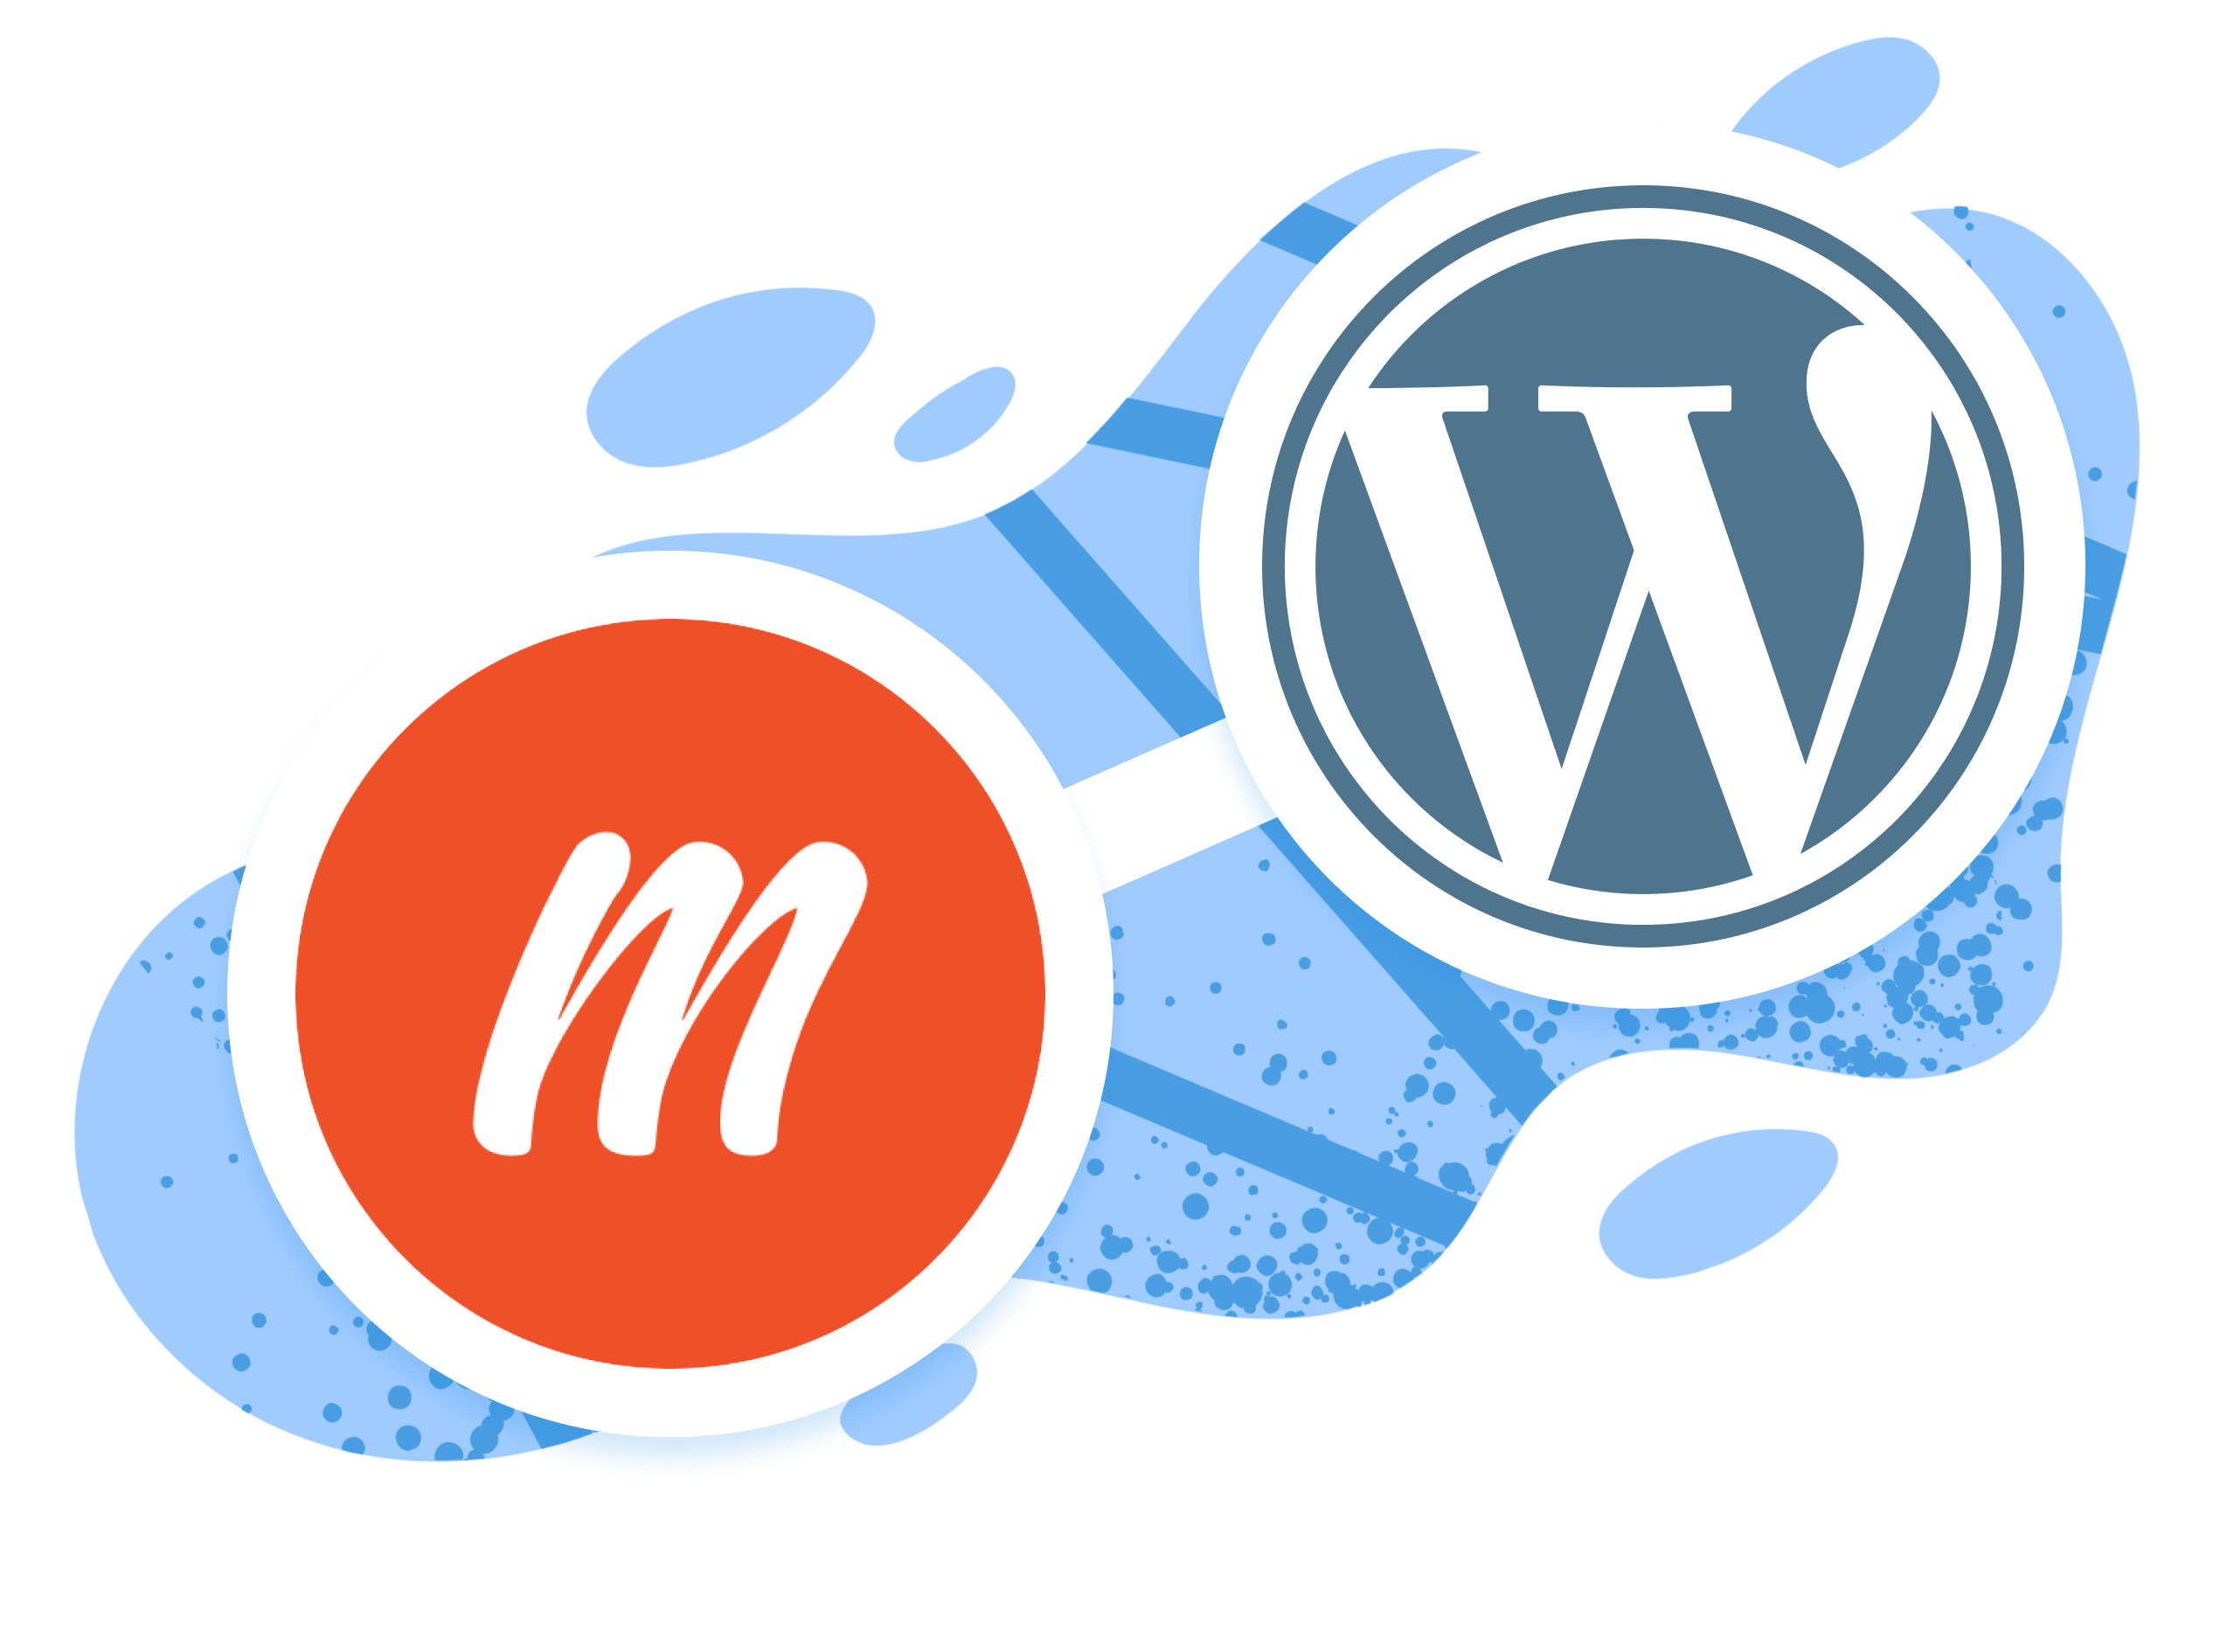 Memberful logo and WordPress logo illustration